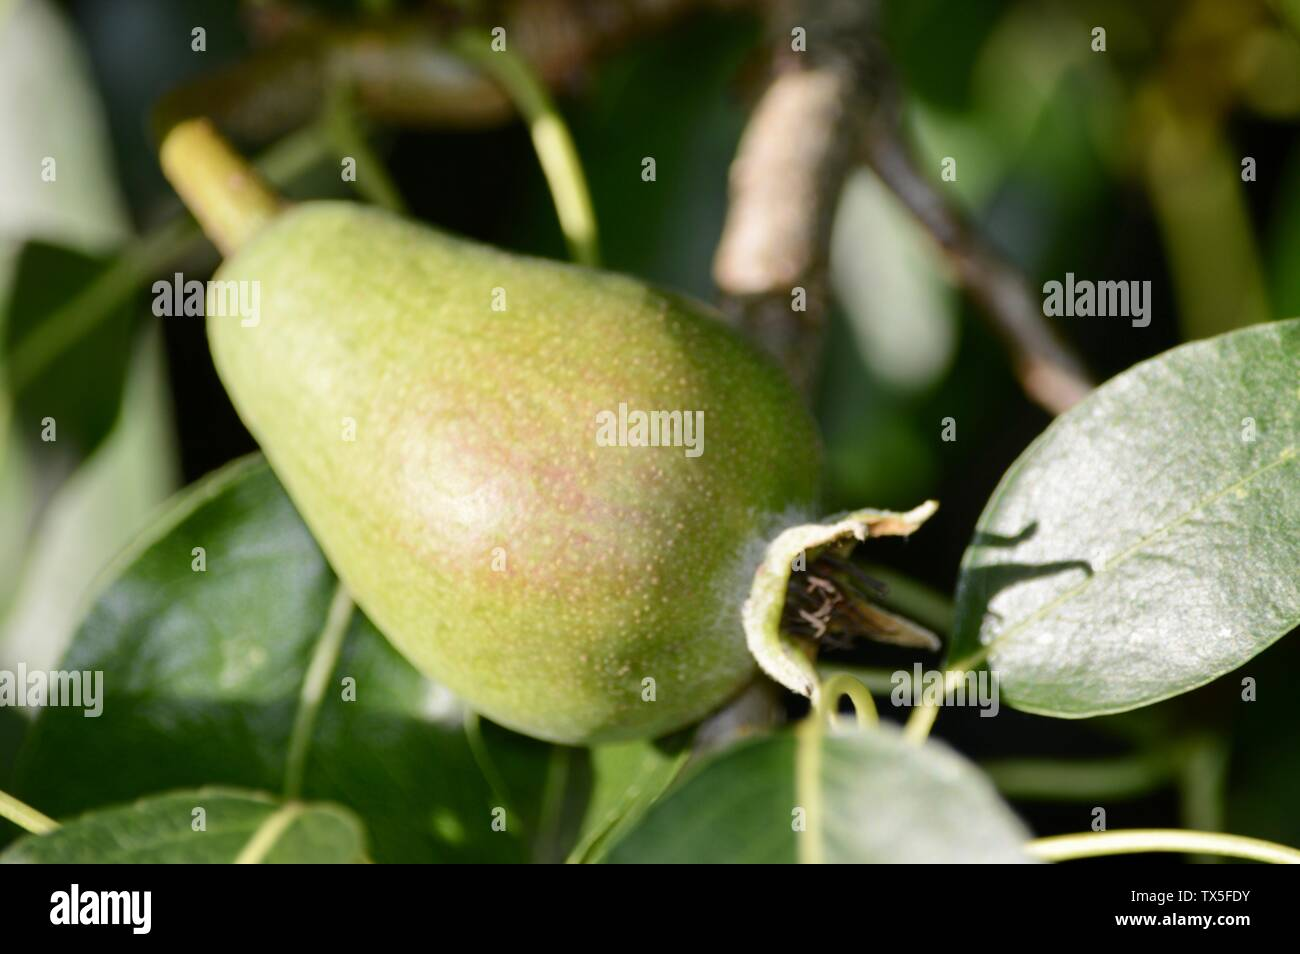 unripe pear growing on its tree Stock Photo